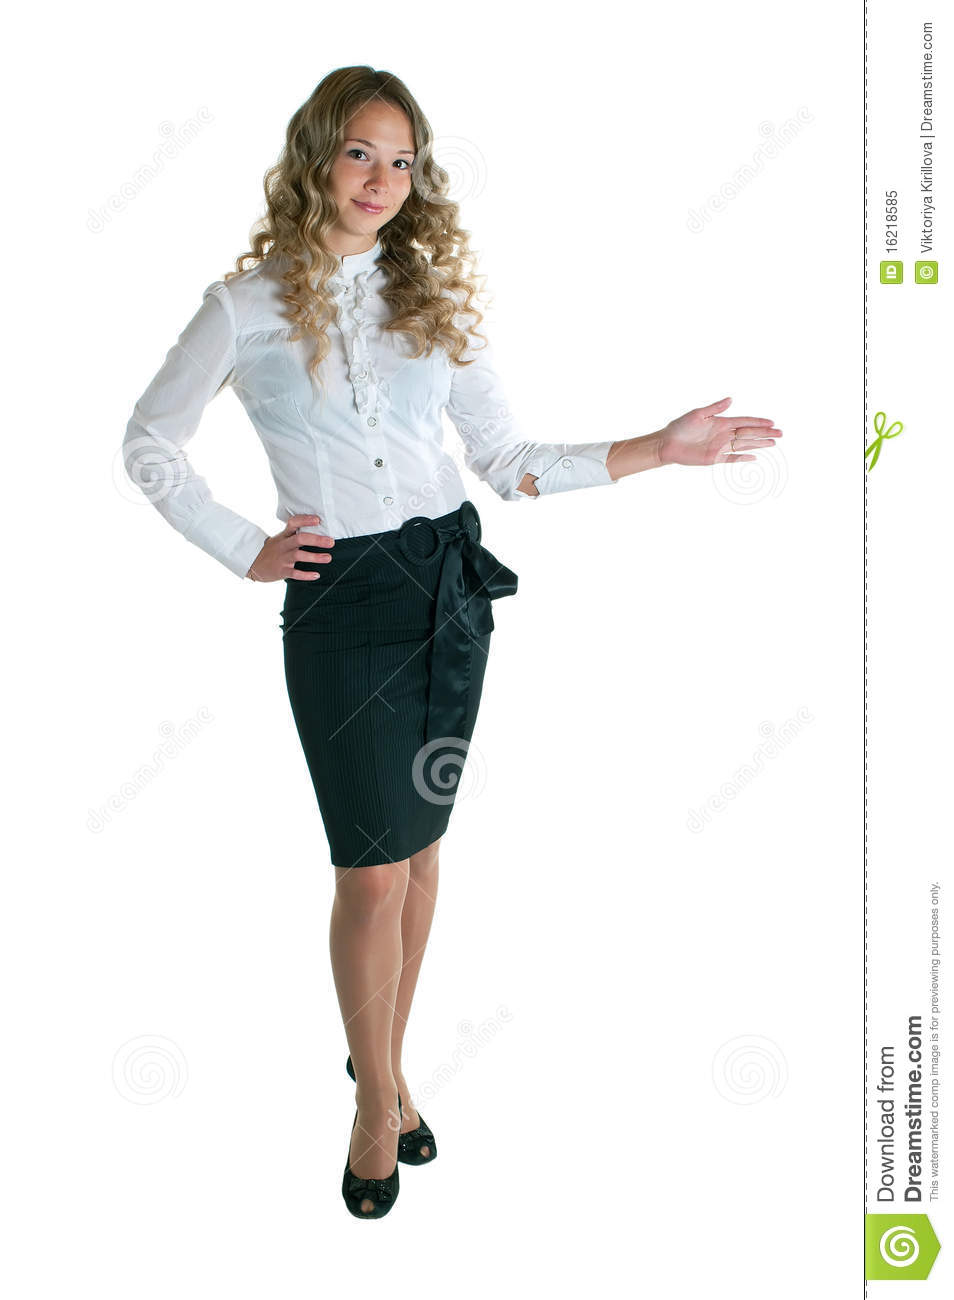 Girl In A White Shirt And Black Skirt Stock Image Image